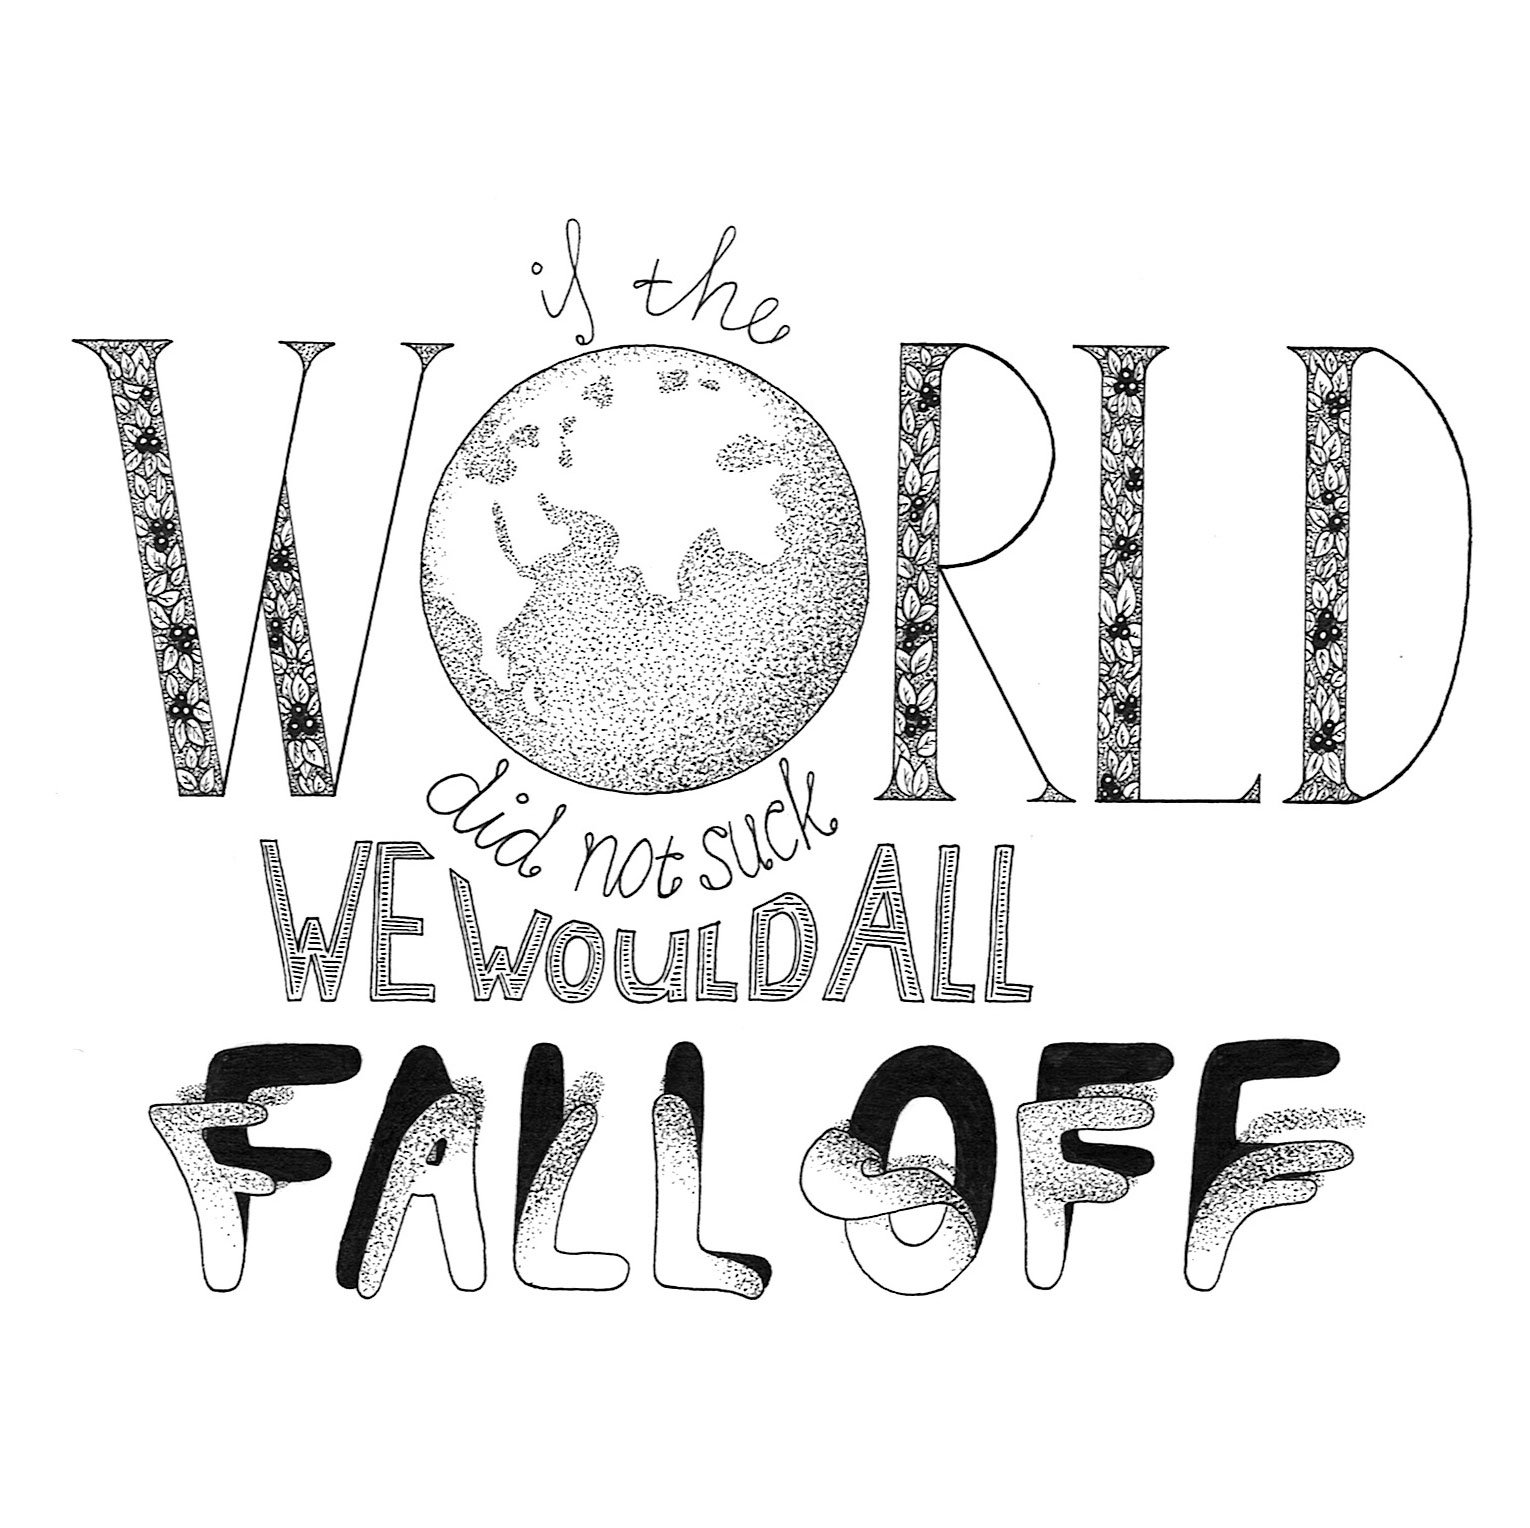 Illustrated quote 'If the world did not suck, we would all fall off'